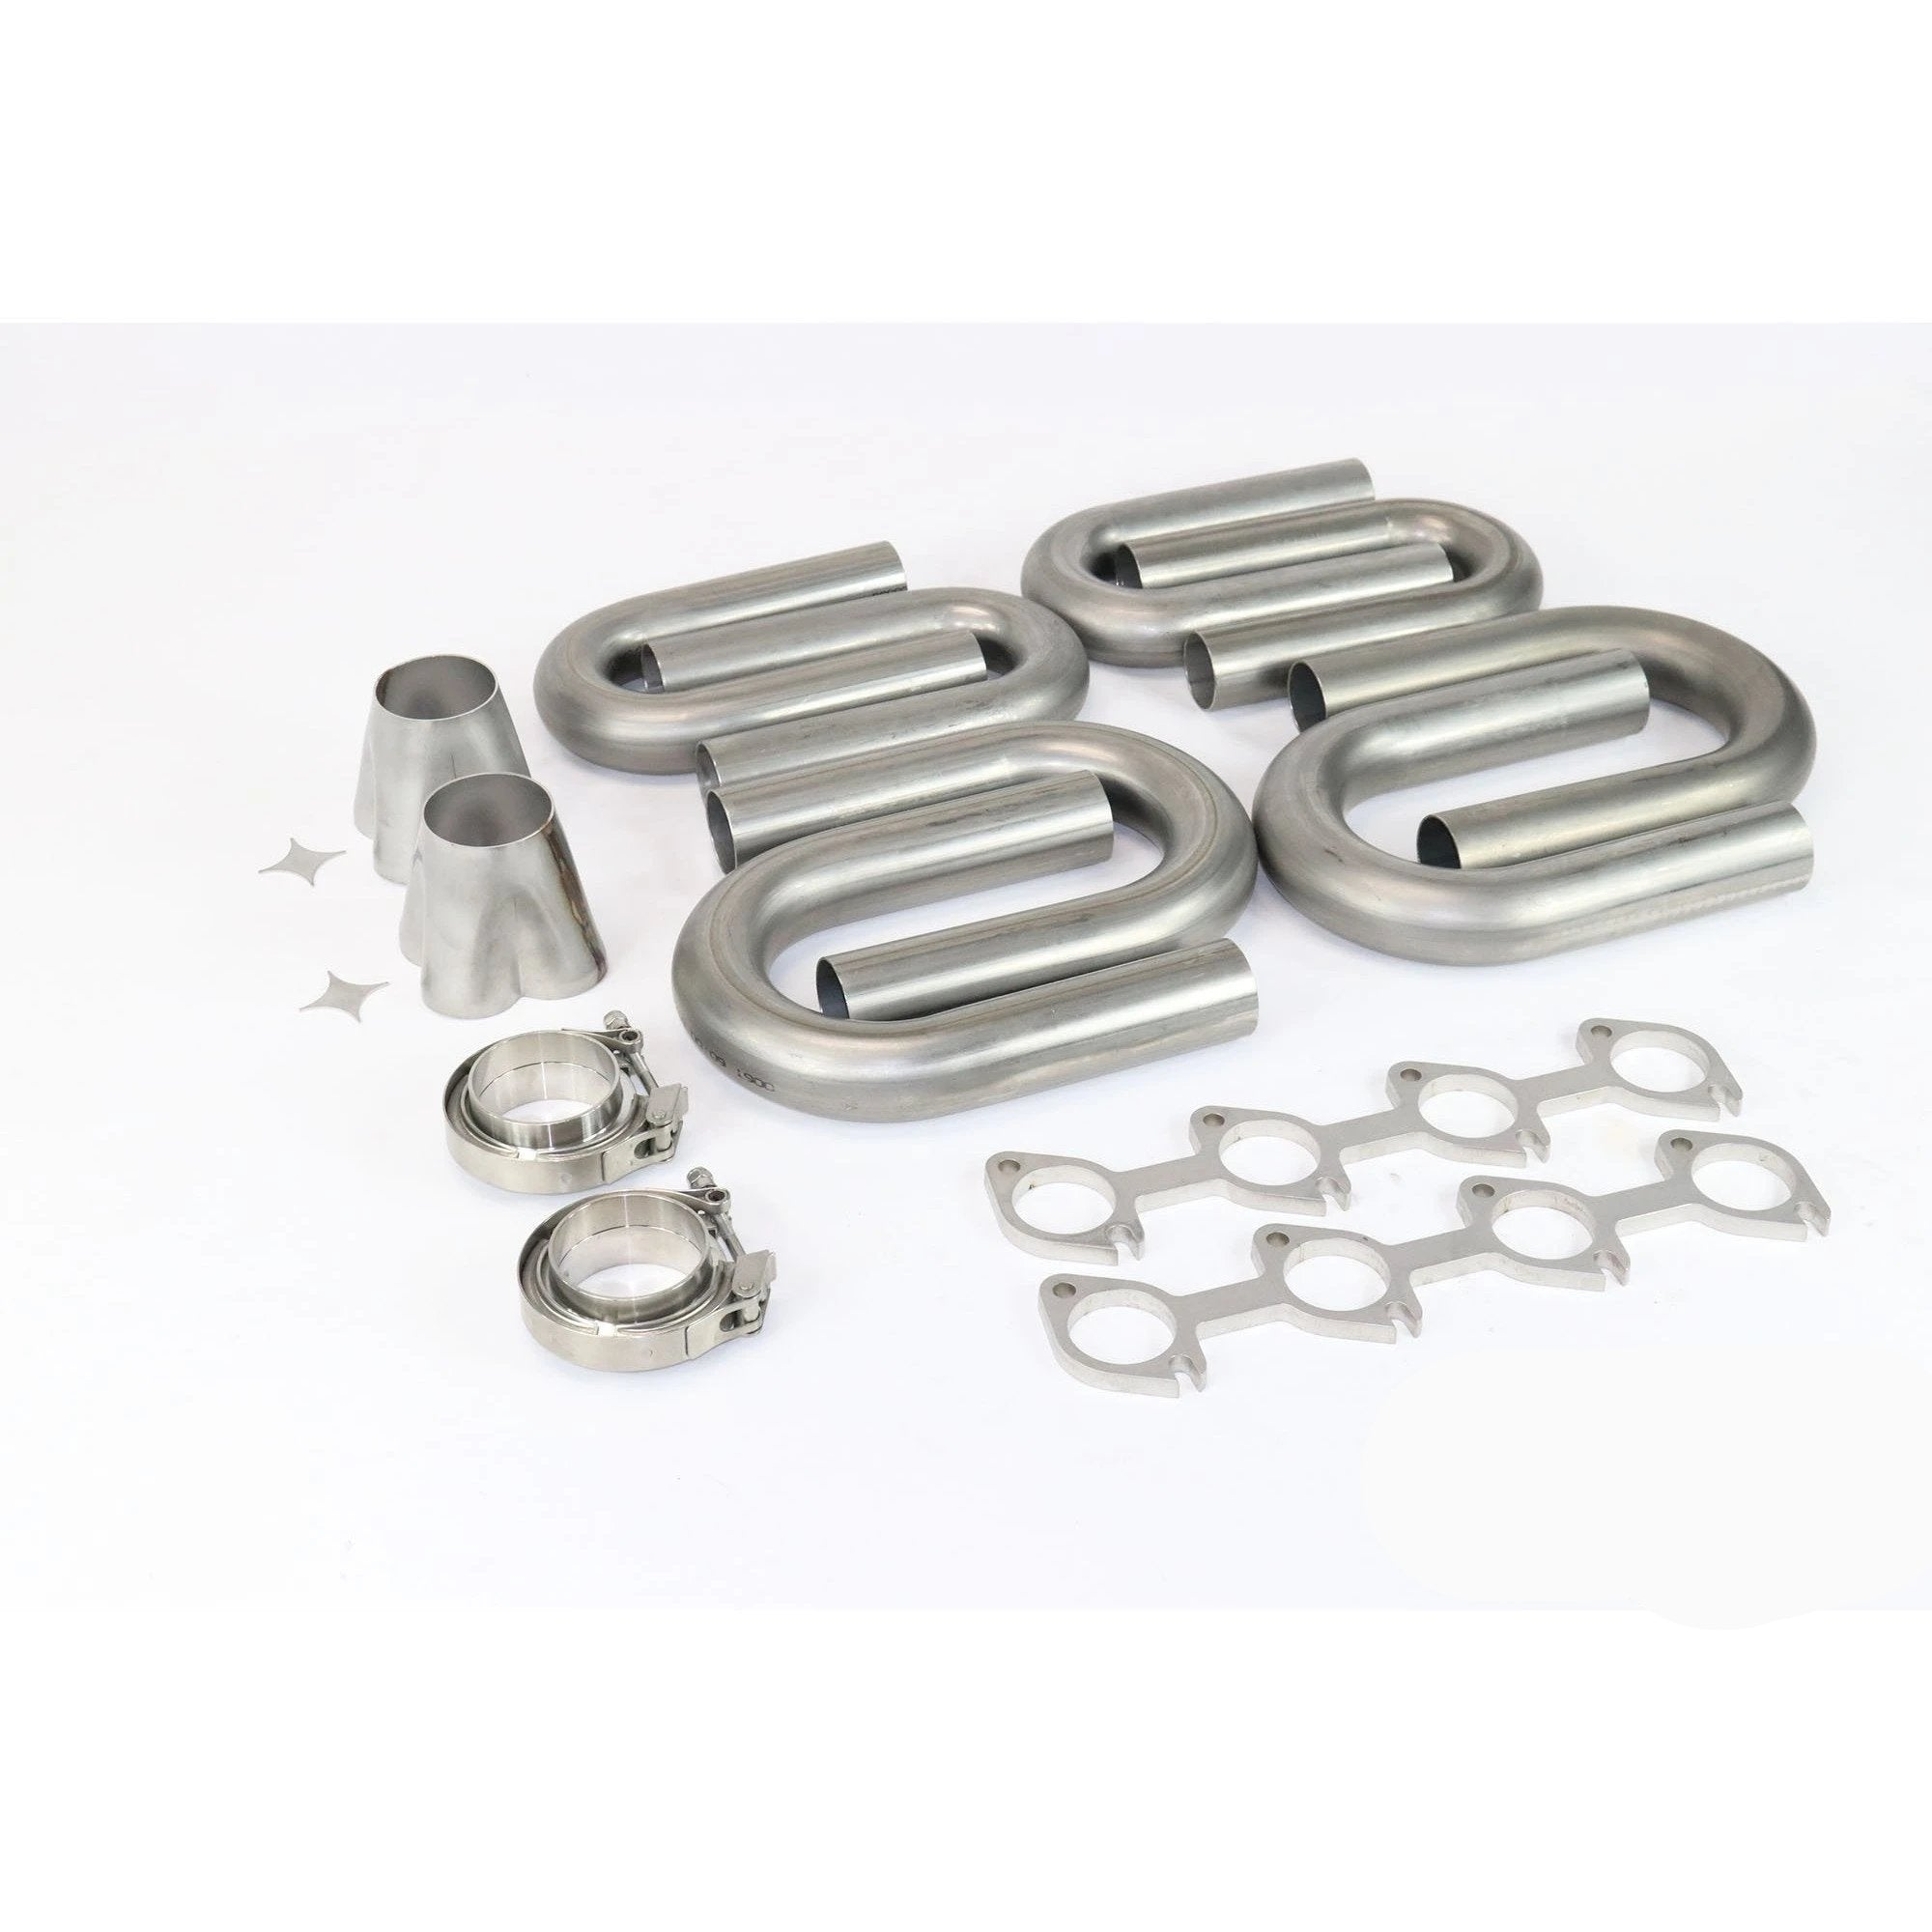 Ford Modular 2V 4.6 304 Stainless Turbo Header Build Kit - Motion Raceworks